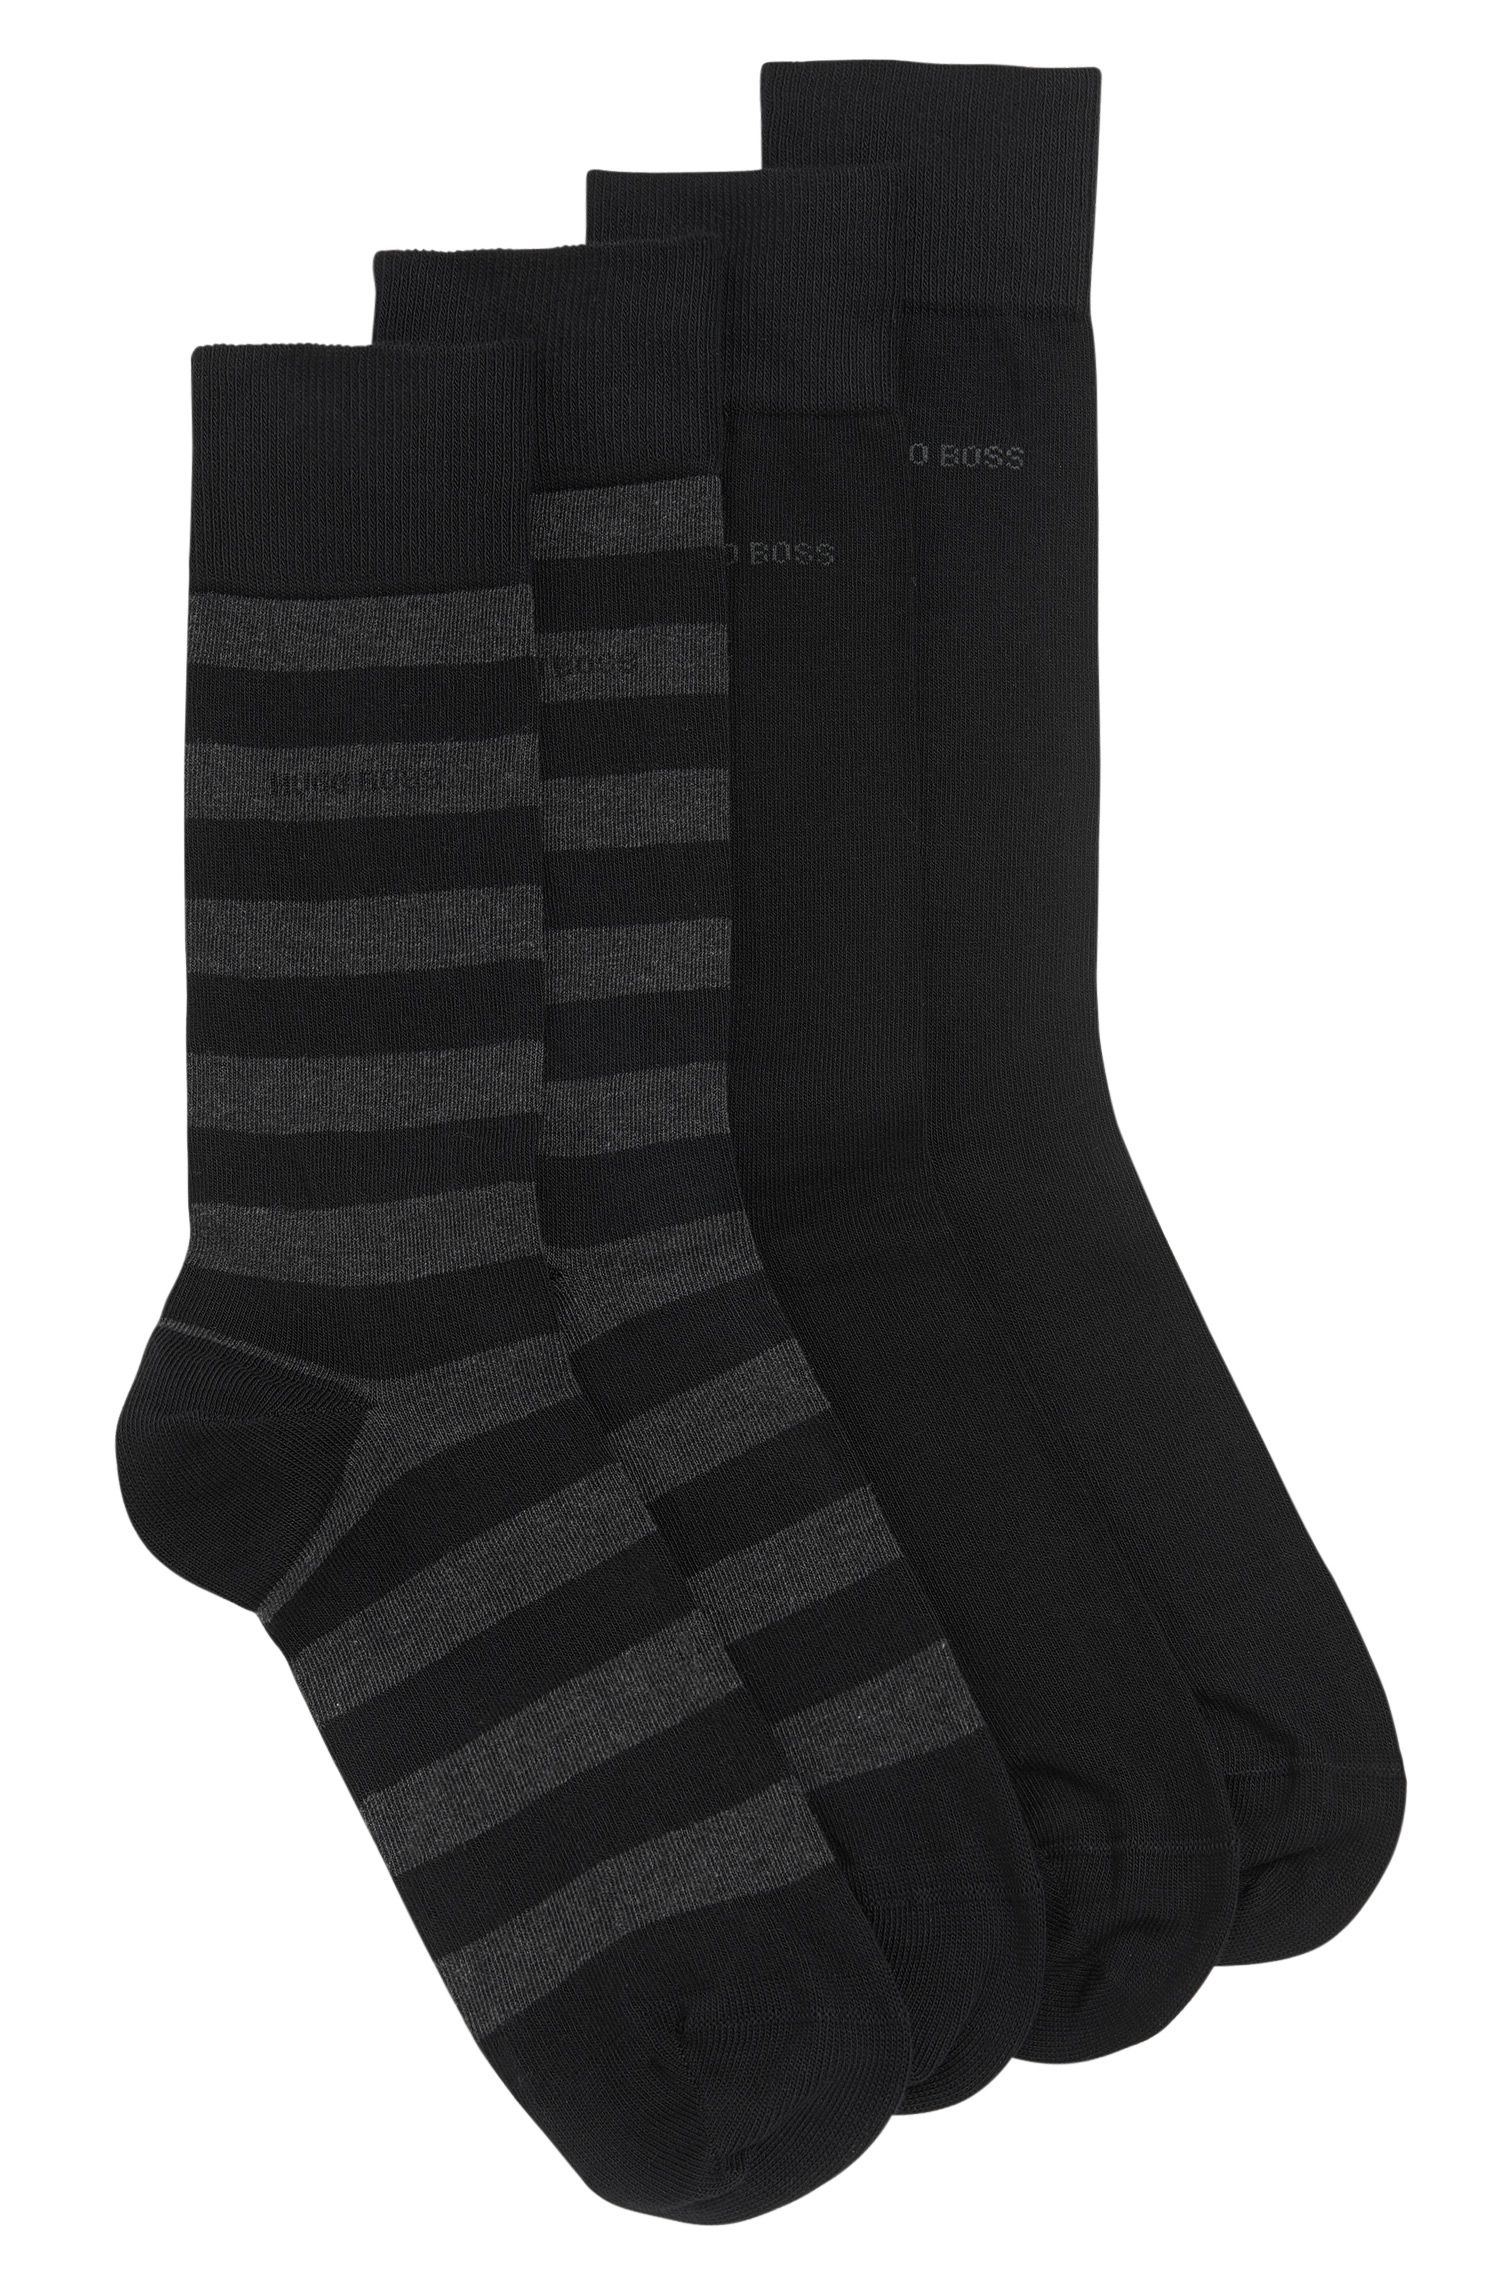 Two-pack of regular-length socks in combed cotton-blend